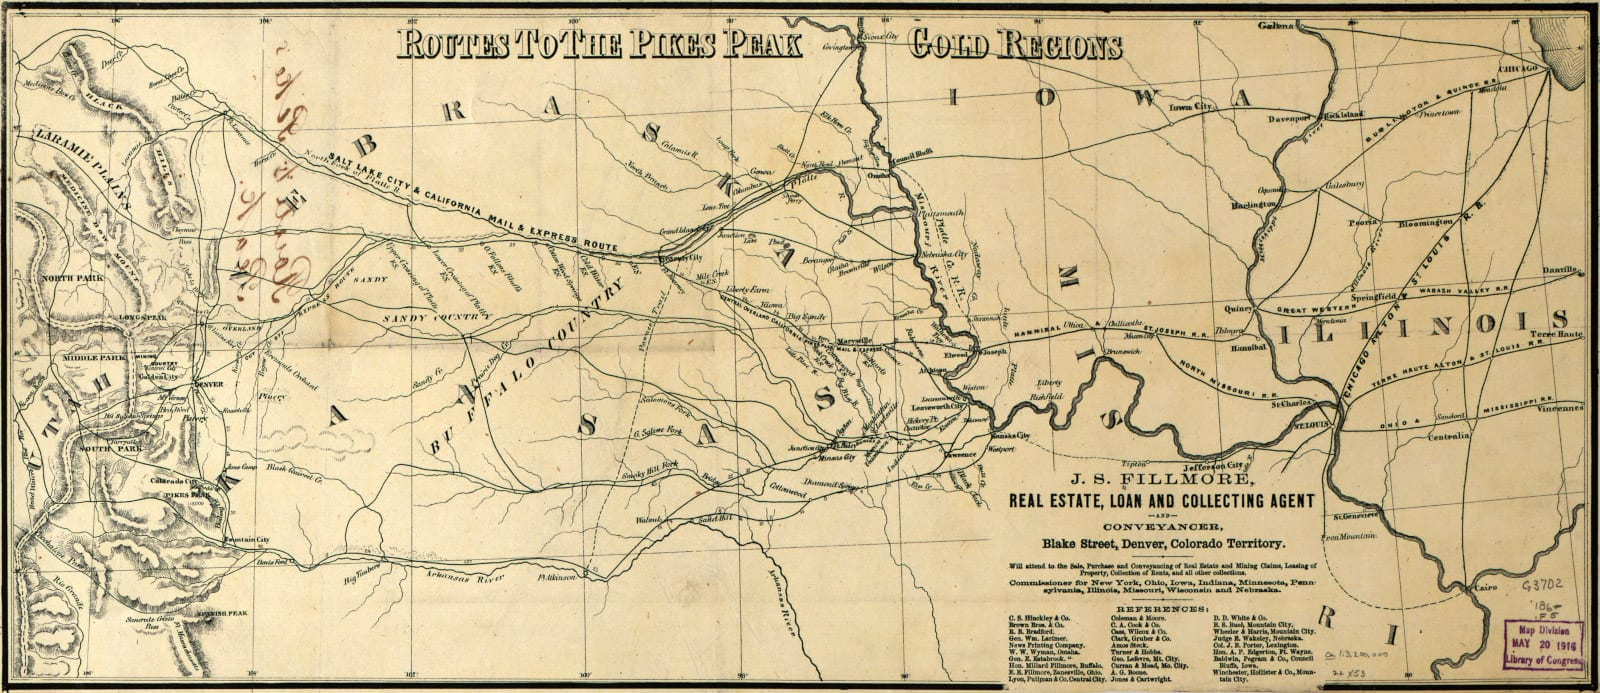 Colorado Mining History Gold Routes Map Lae 1850s